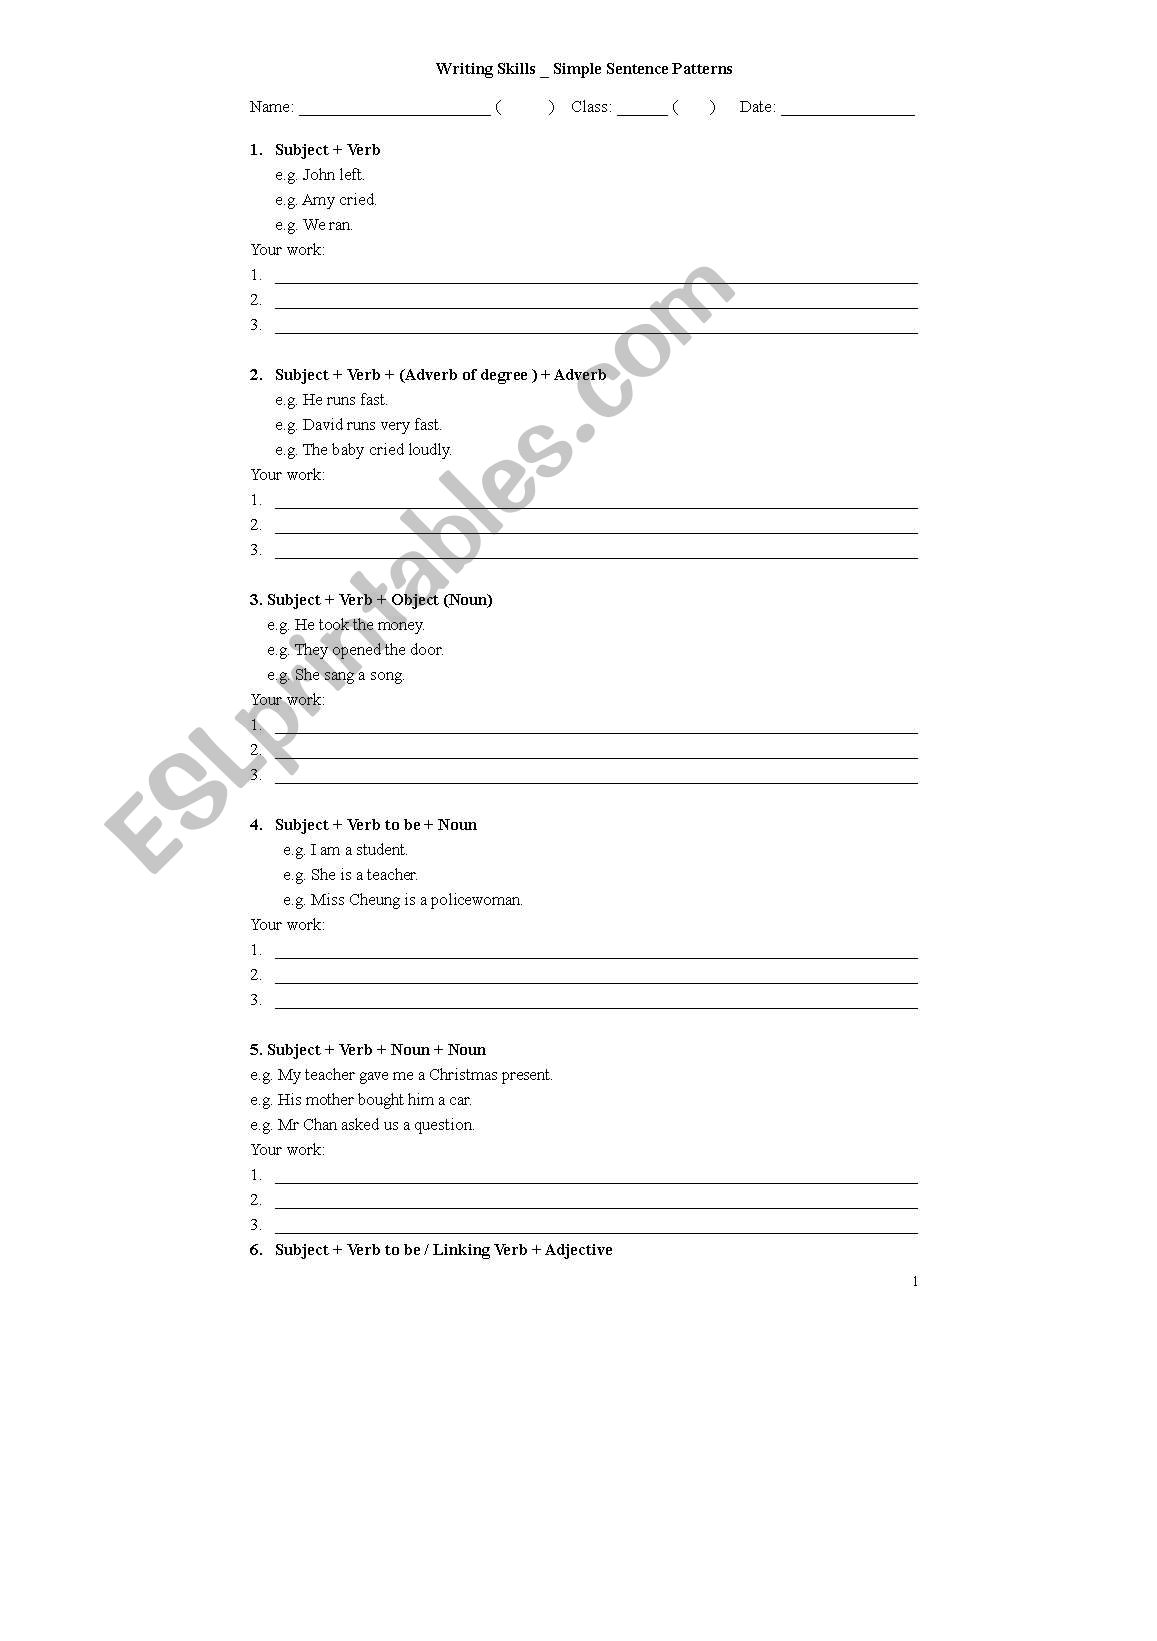 English Worksheets Simple Sentence Patterns